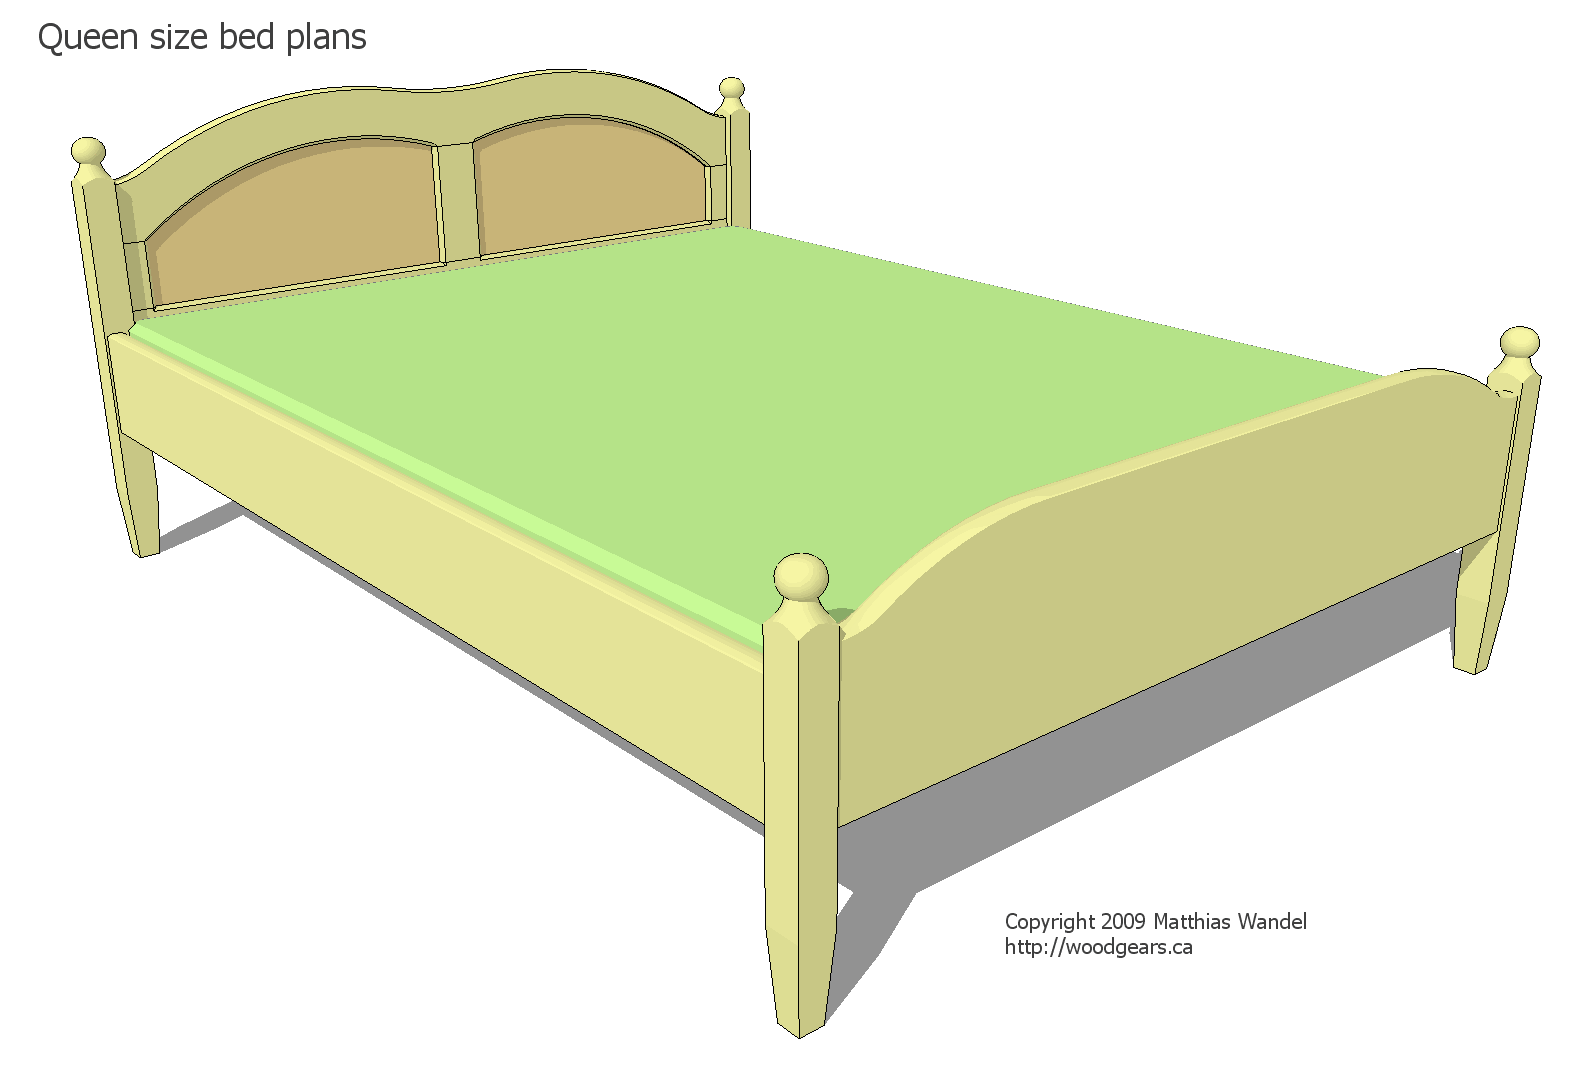 queen size bed plans. Black Bedroom Furniture Sets. Home Design Ideas